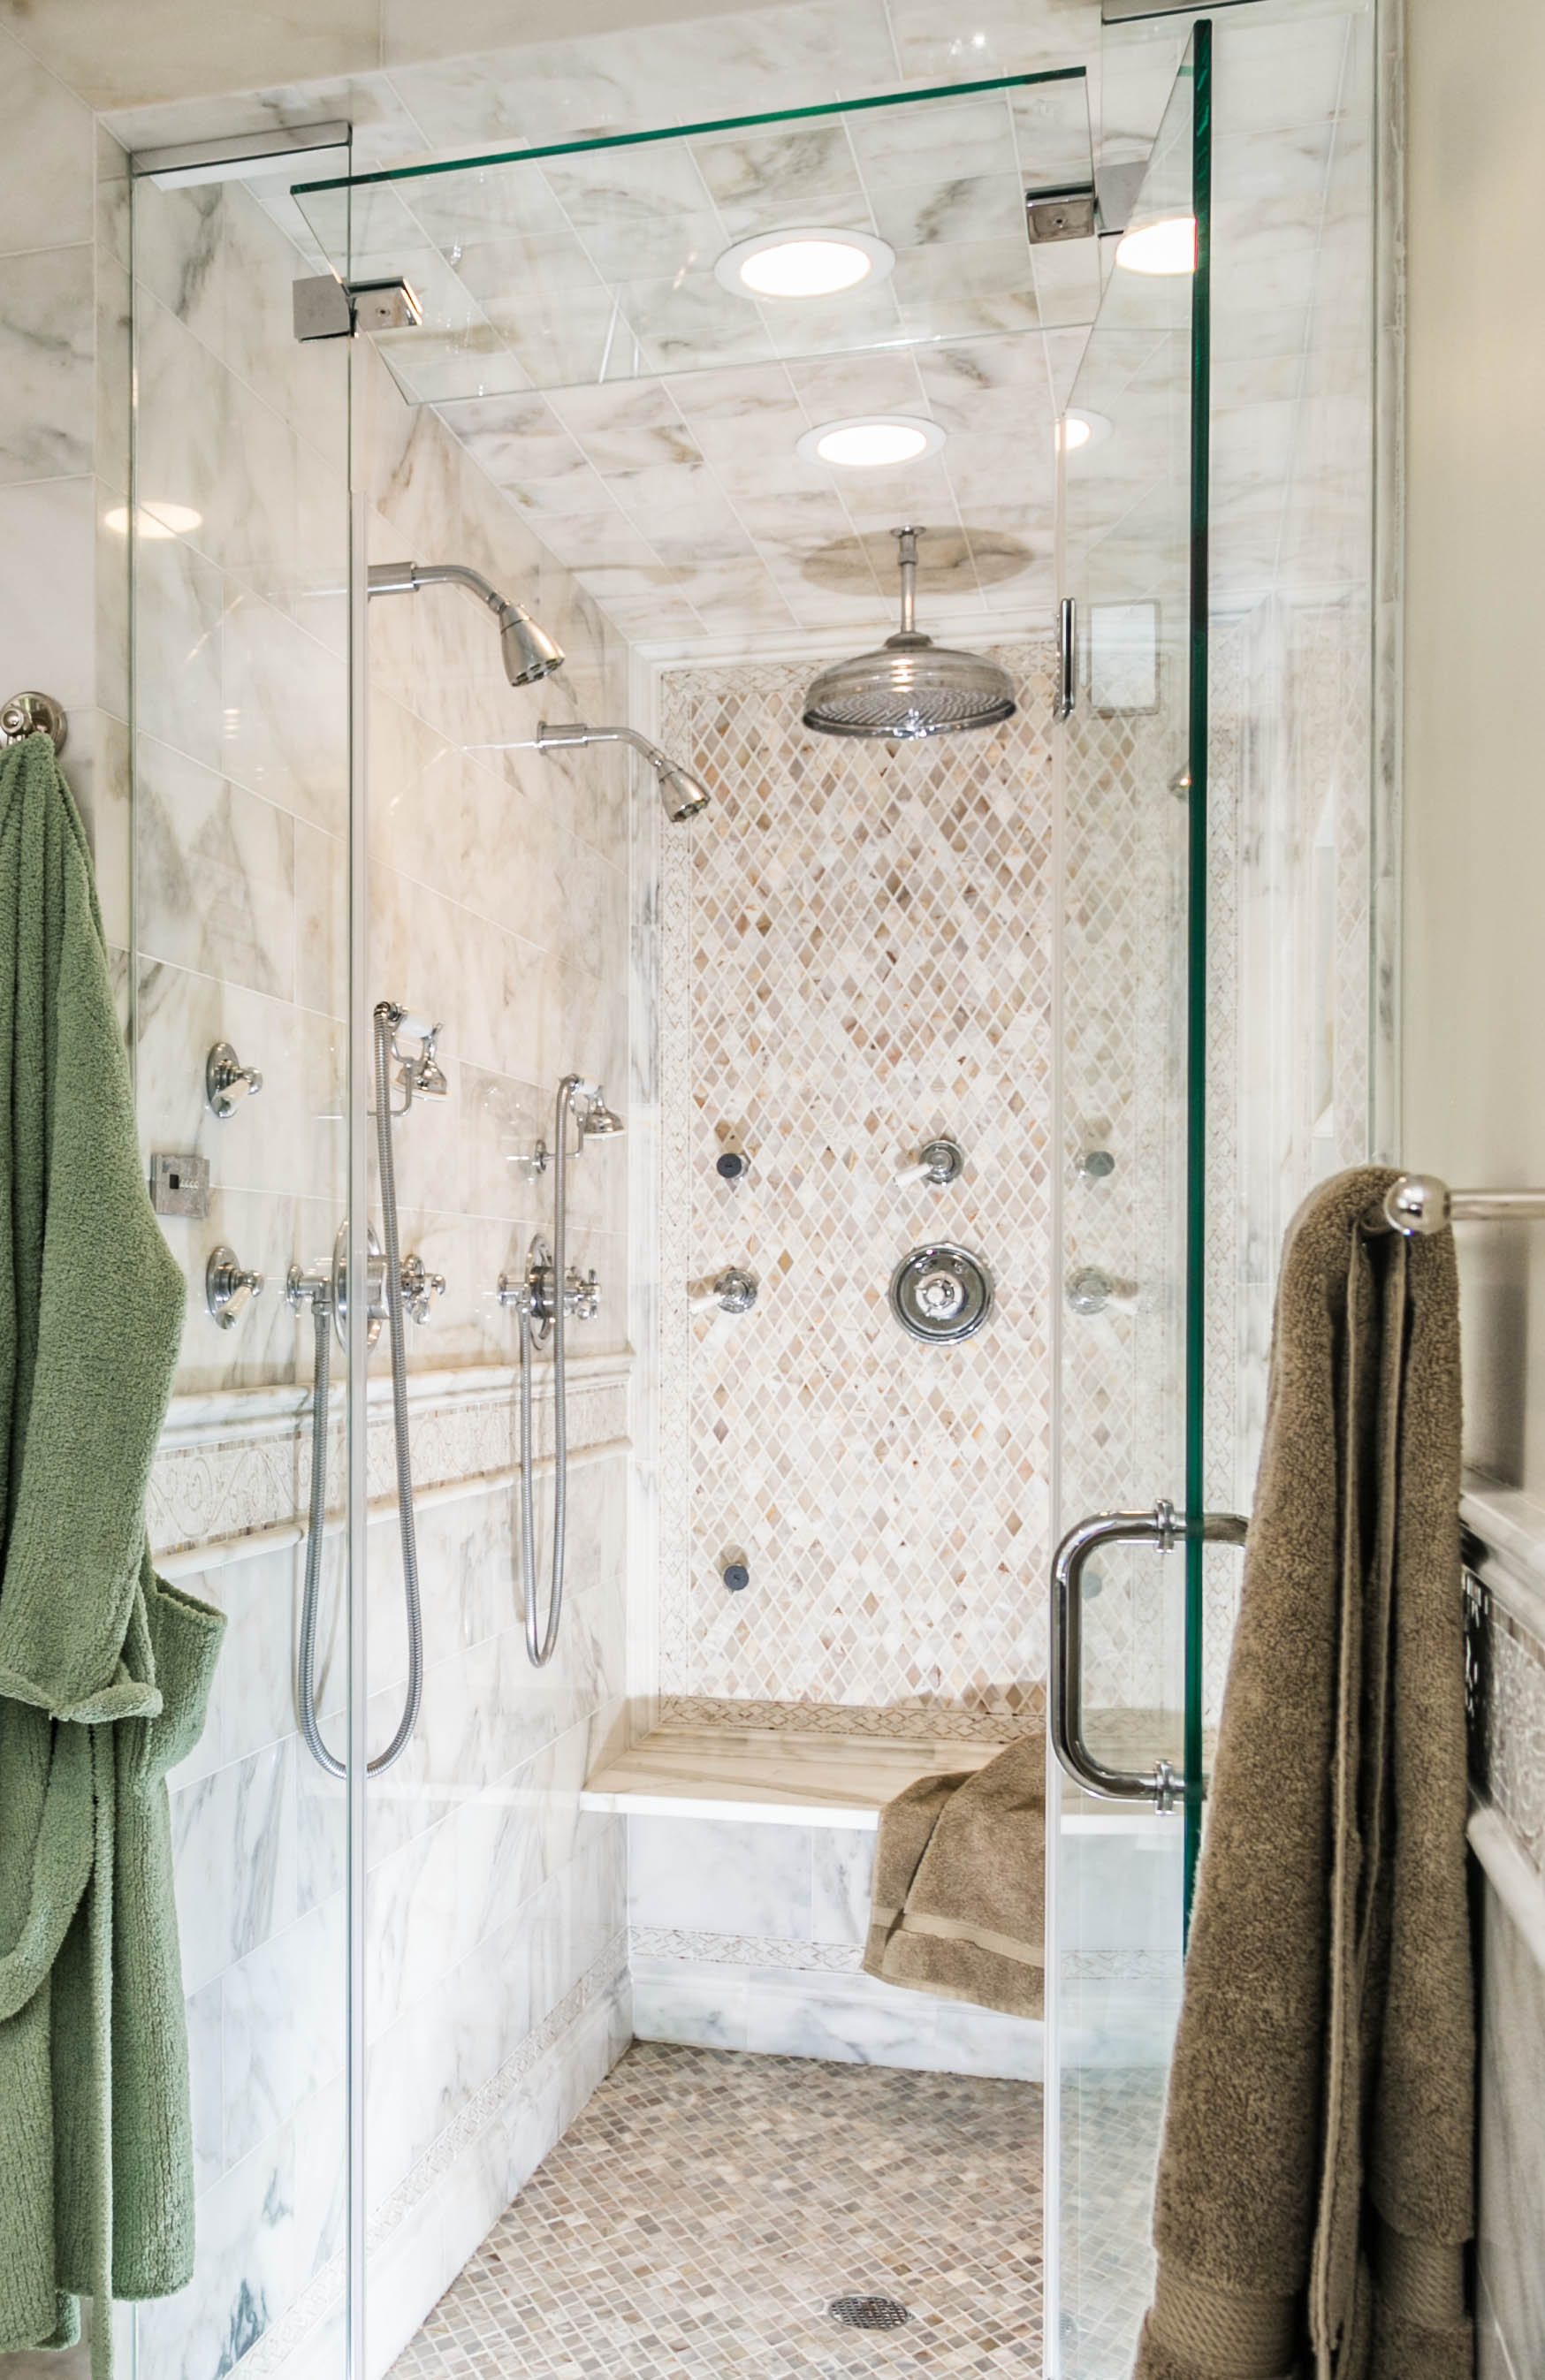 Bathroom with glass walled shower and towel racks